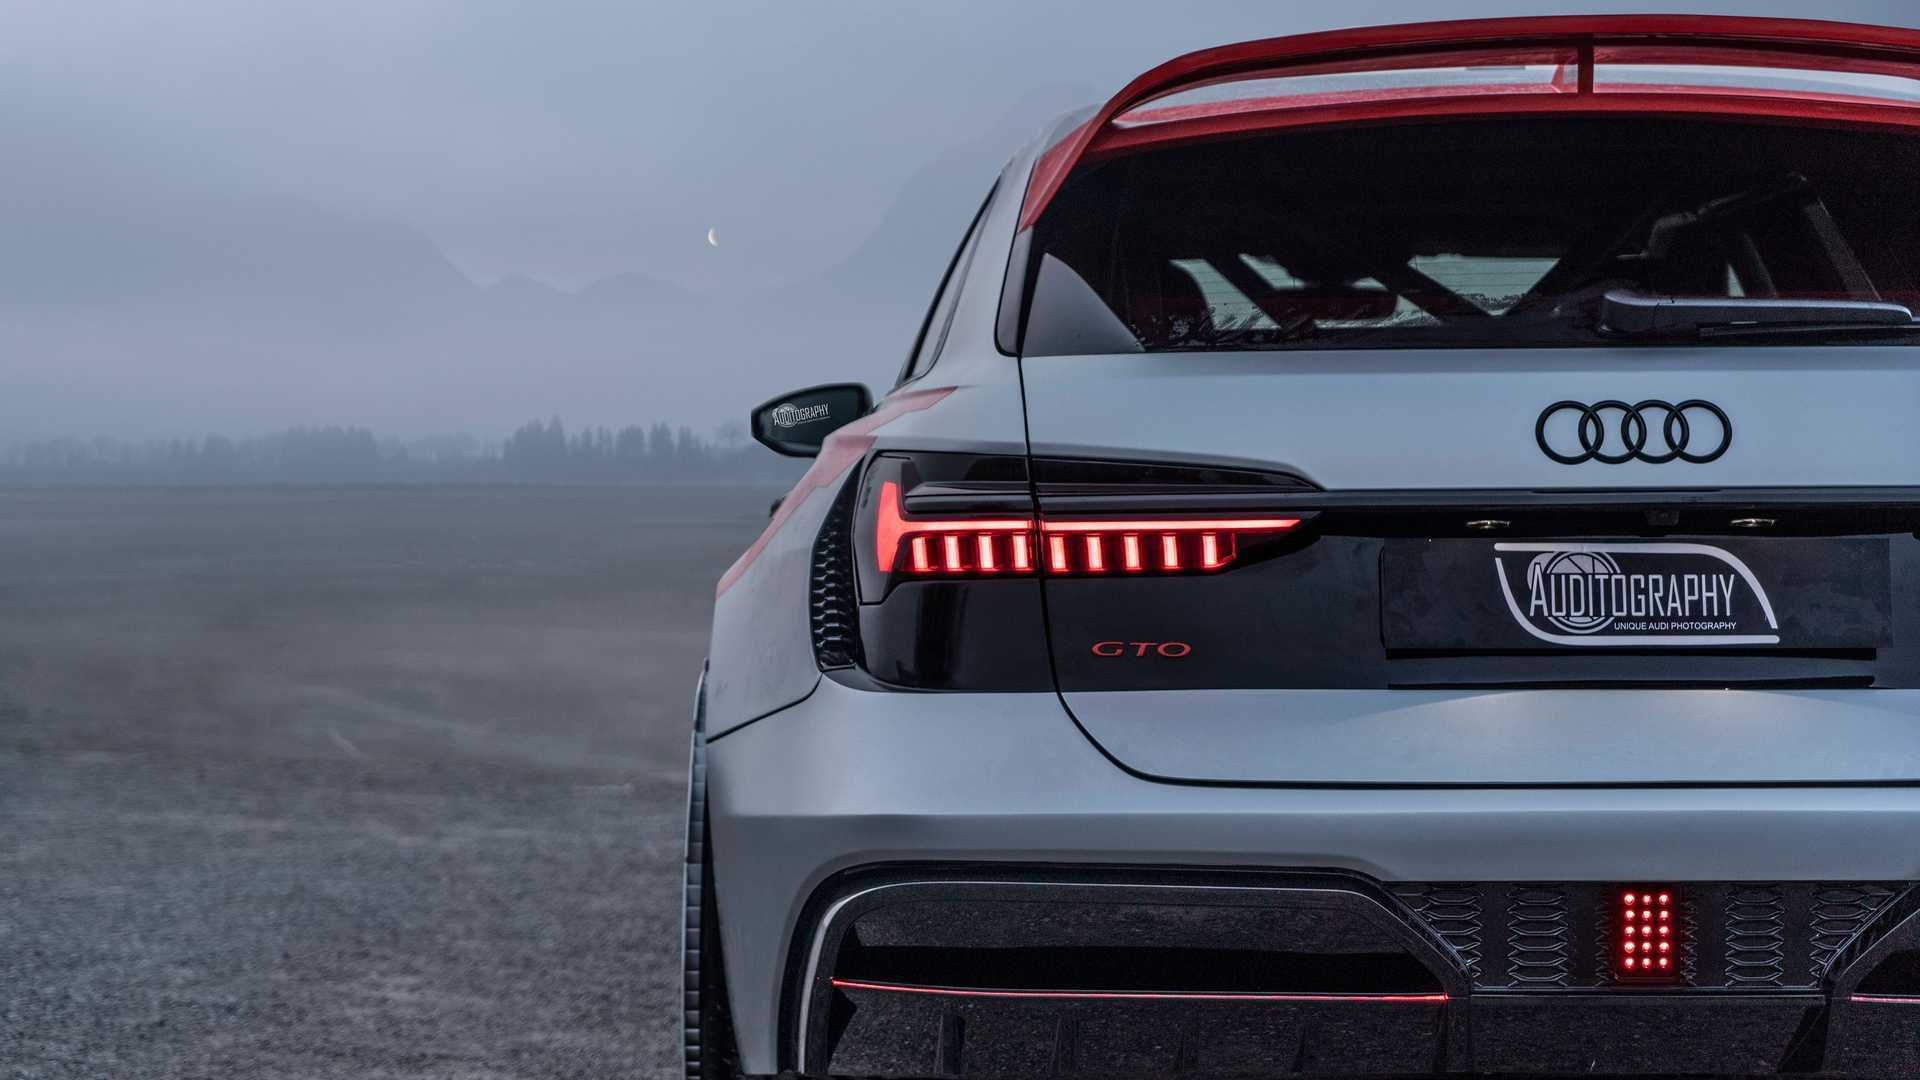 Audi_RS6_GTO_by_Auditography-0008